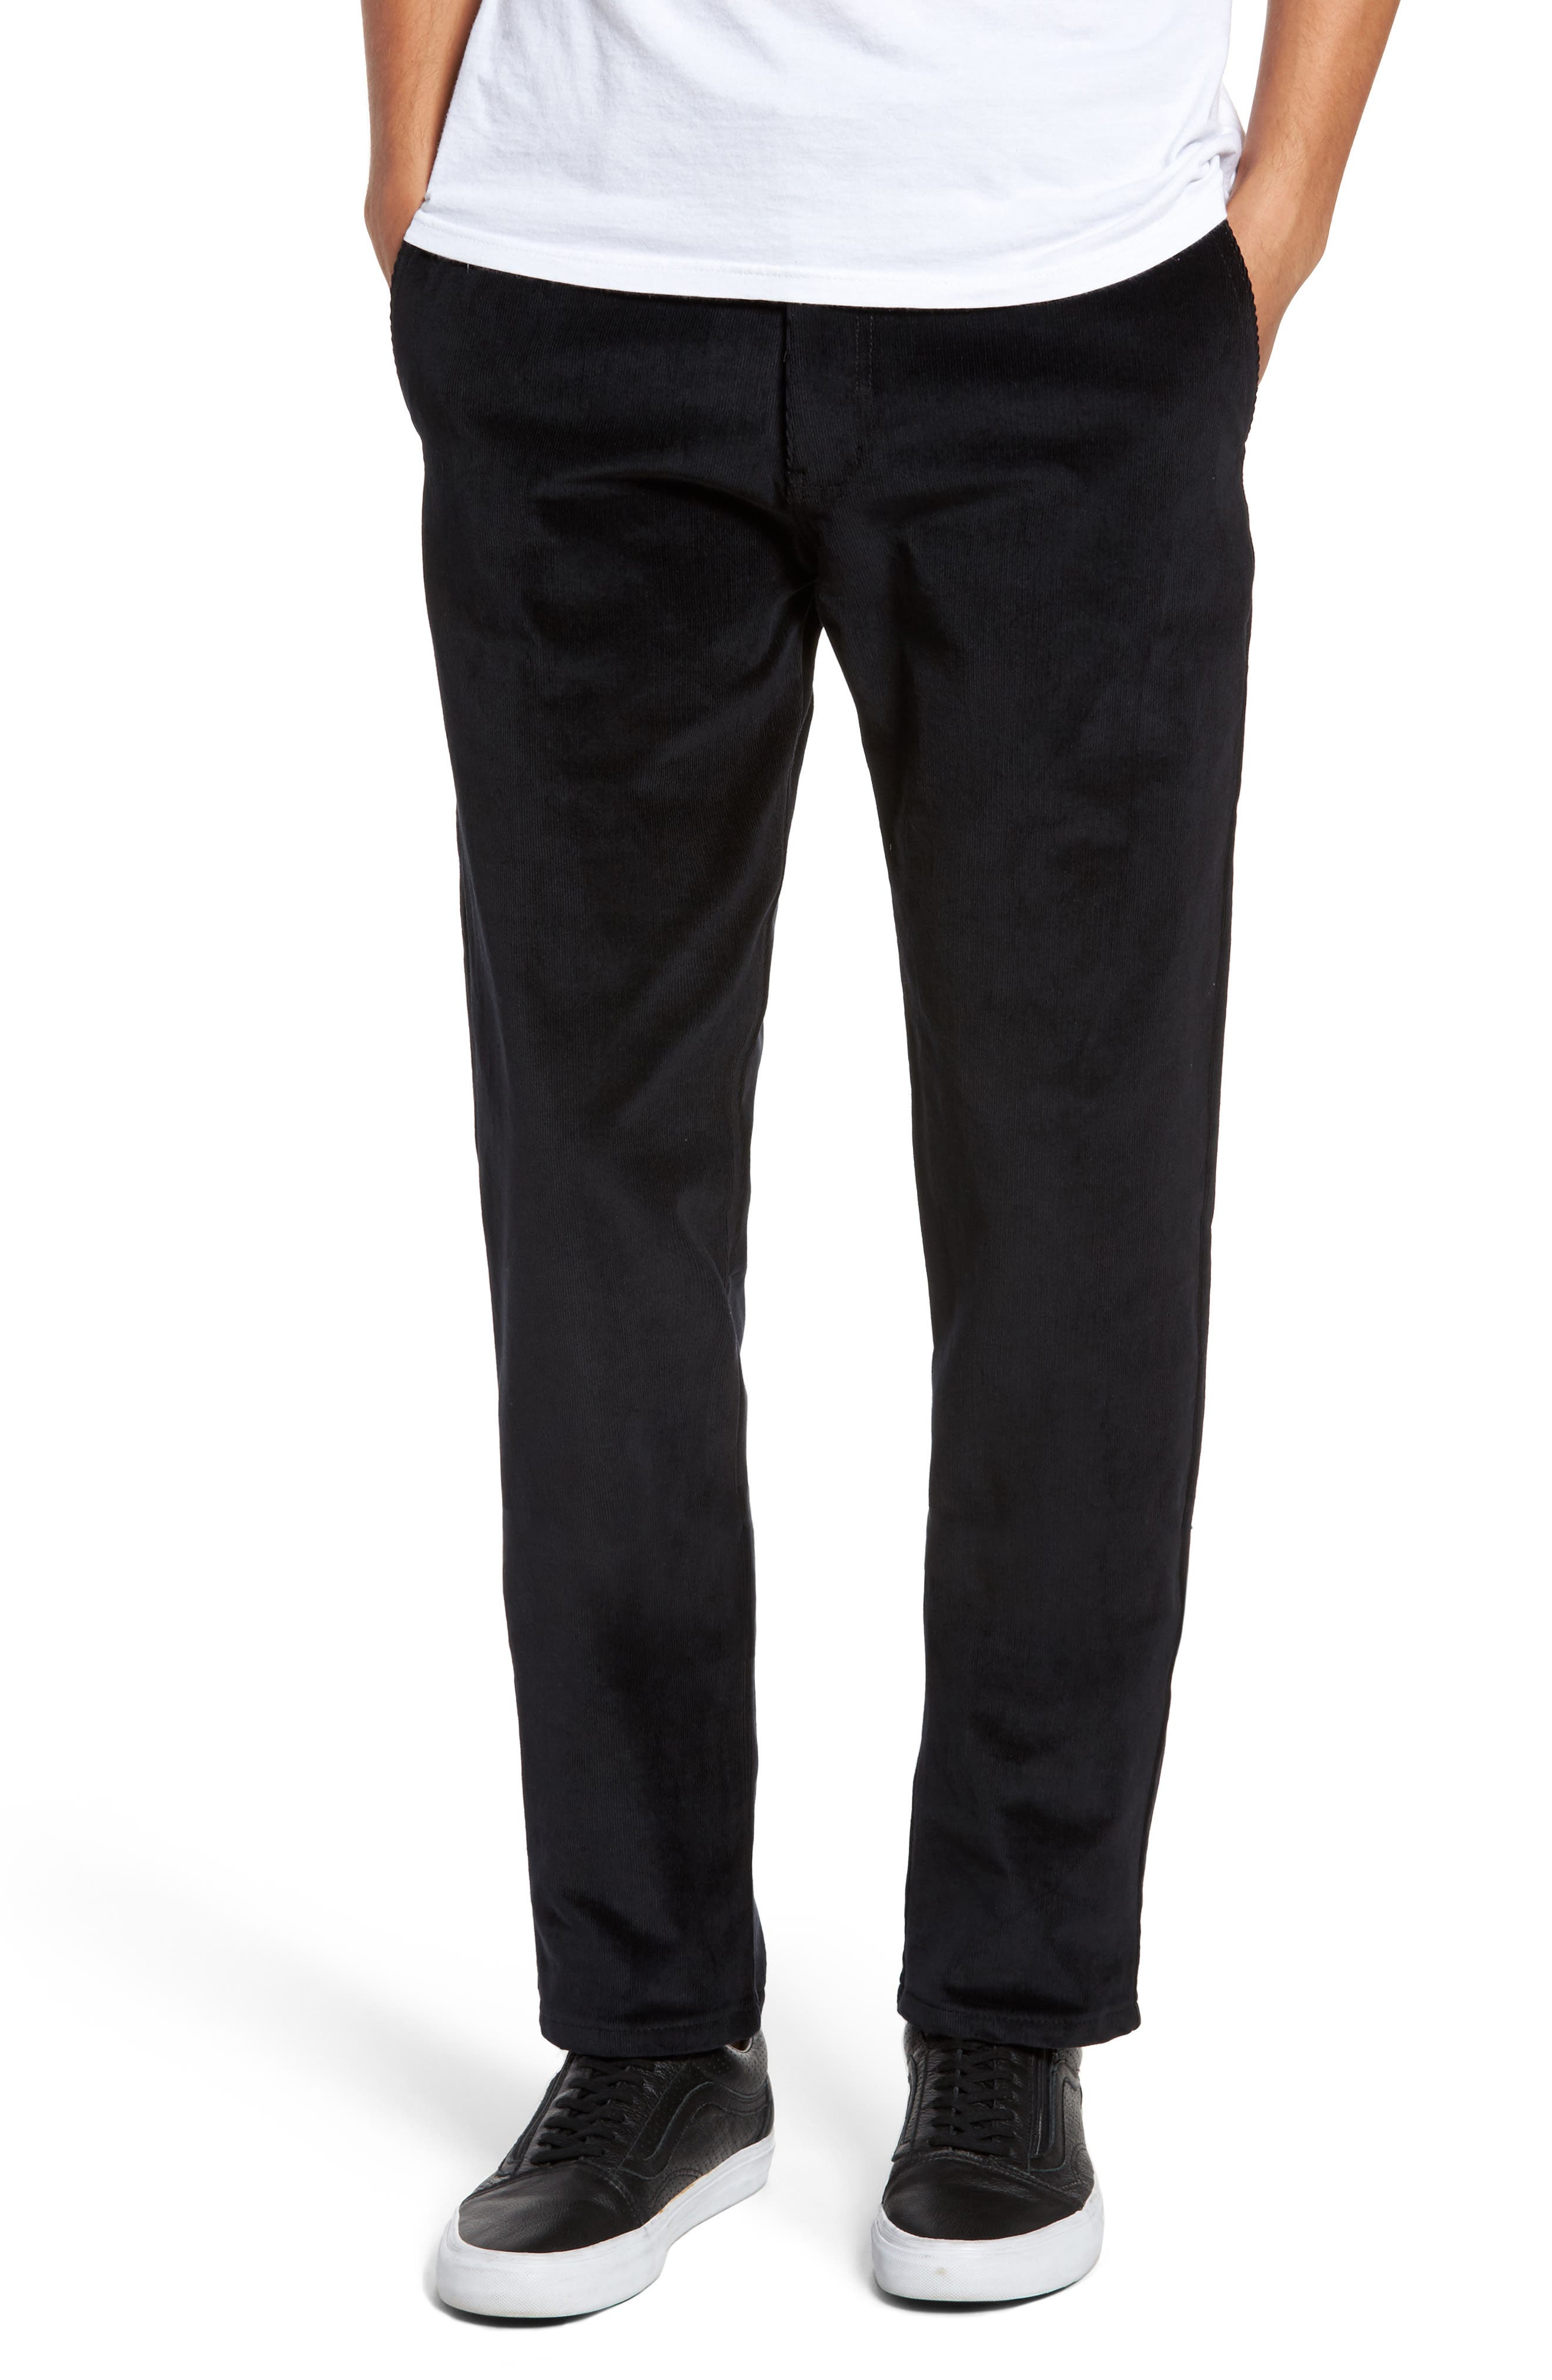 Naked & Famous Slim Chino Slim Fit Corduroy Pants,                             Main thumbnail 1, color,                             001